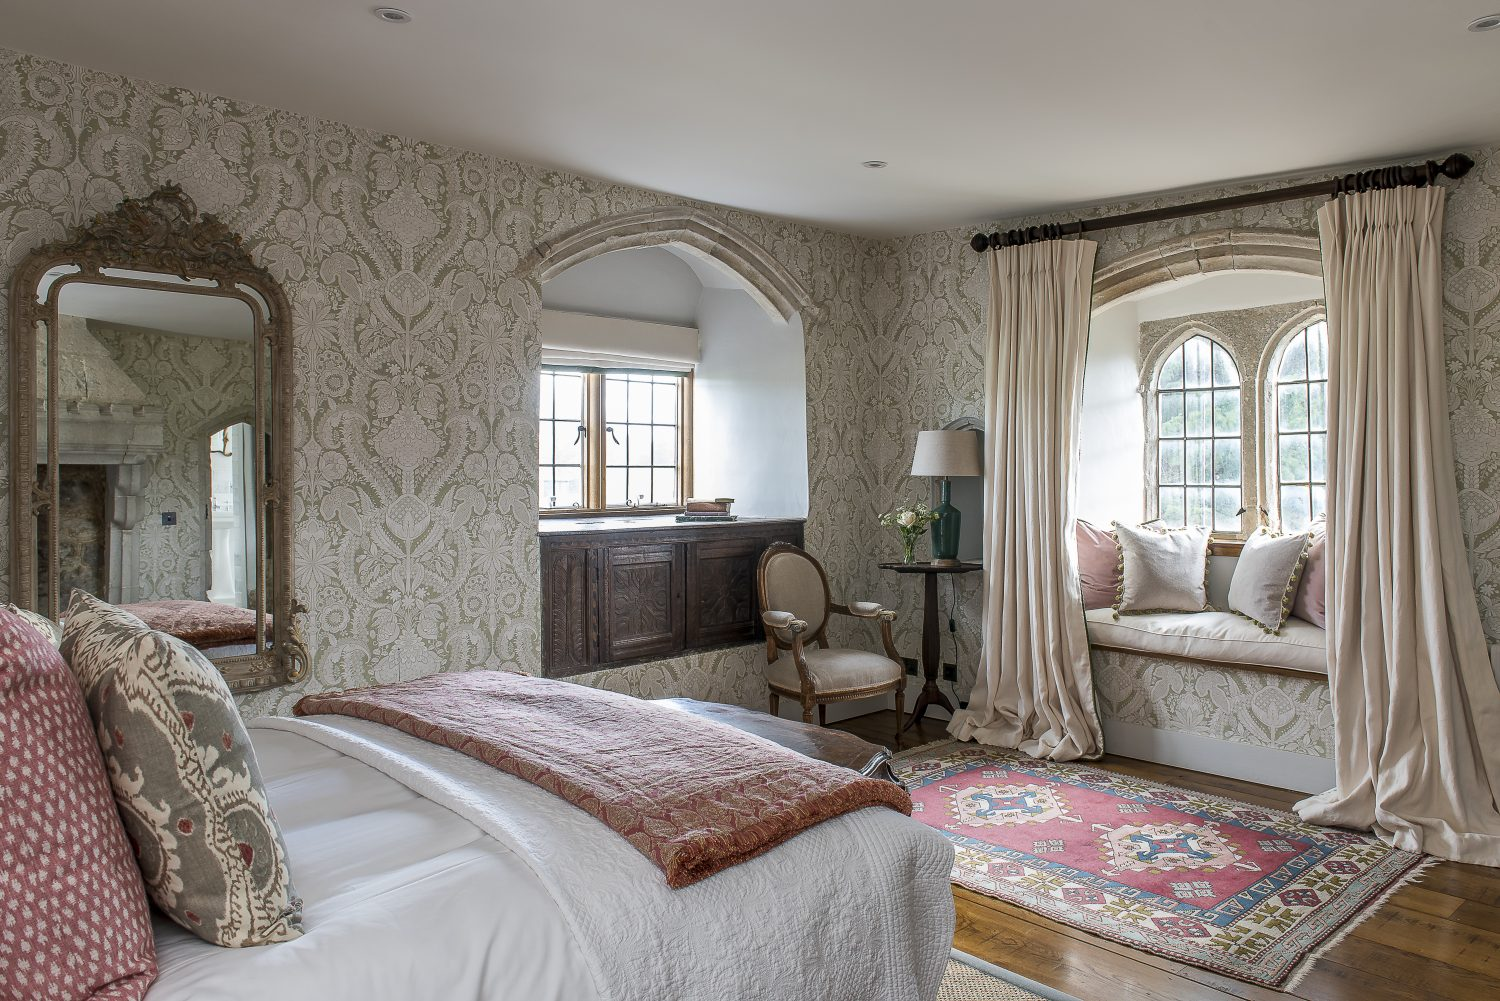 Arched stone windows and puddled curtains in the Hellebore bedroom